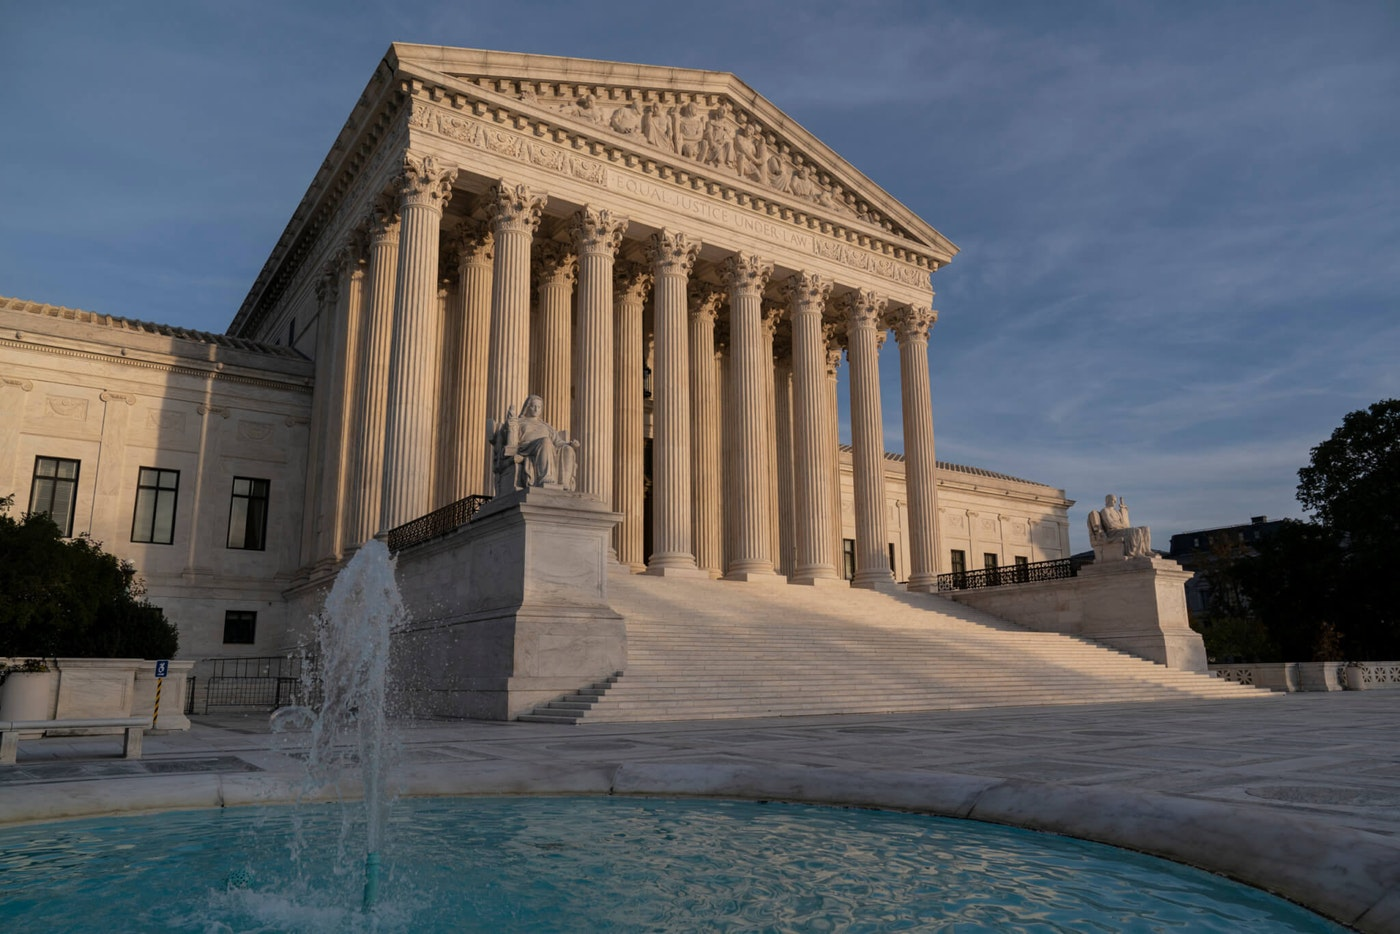 In this Nov. 5, 2020 file photo, the Supreme Court is seen in Washington.  The Supreme Court will take up challenges to controversial Trump administration policies affecting family-planning clinics and immigrants, even though the Biden administration has announced it is reviewing them. (AP Photo/J. Scott Applewhite)